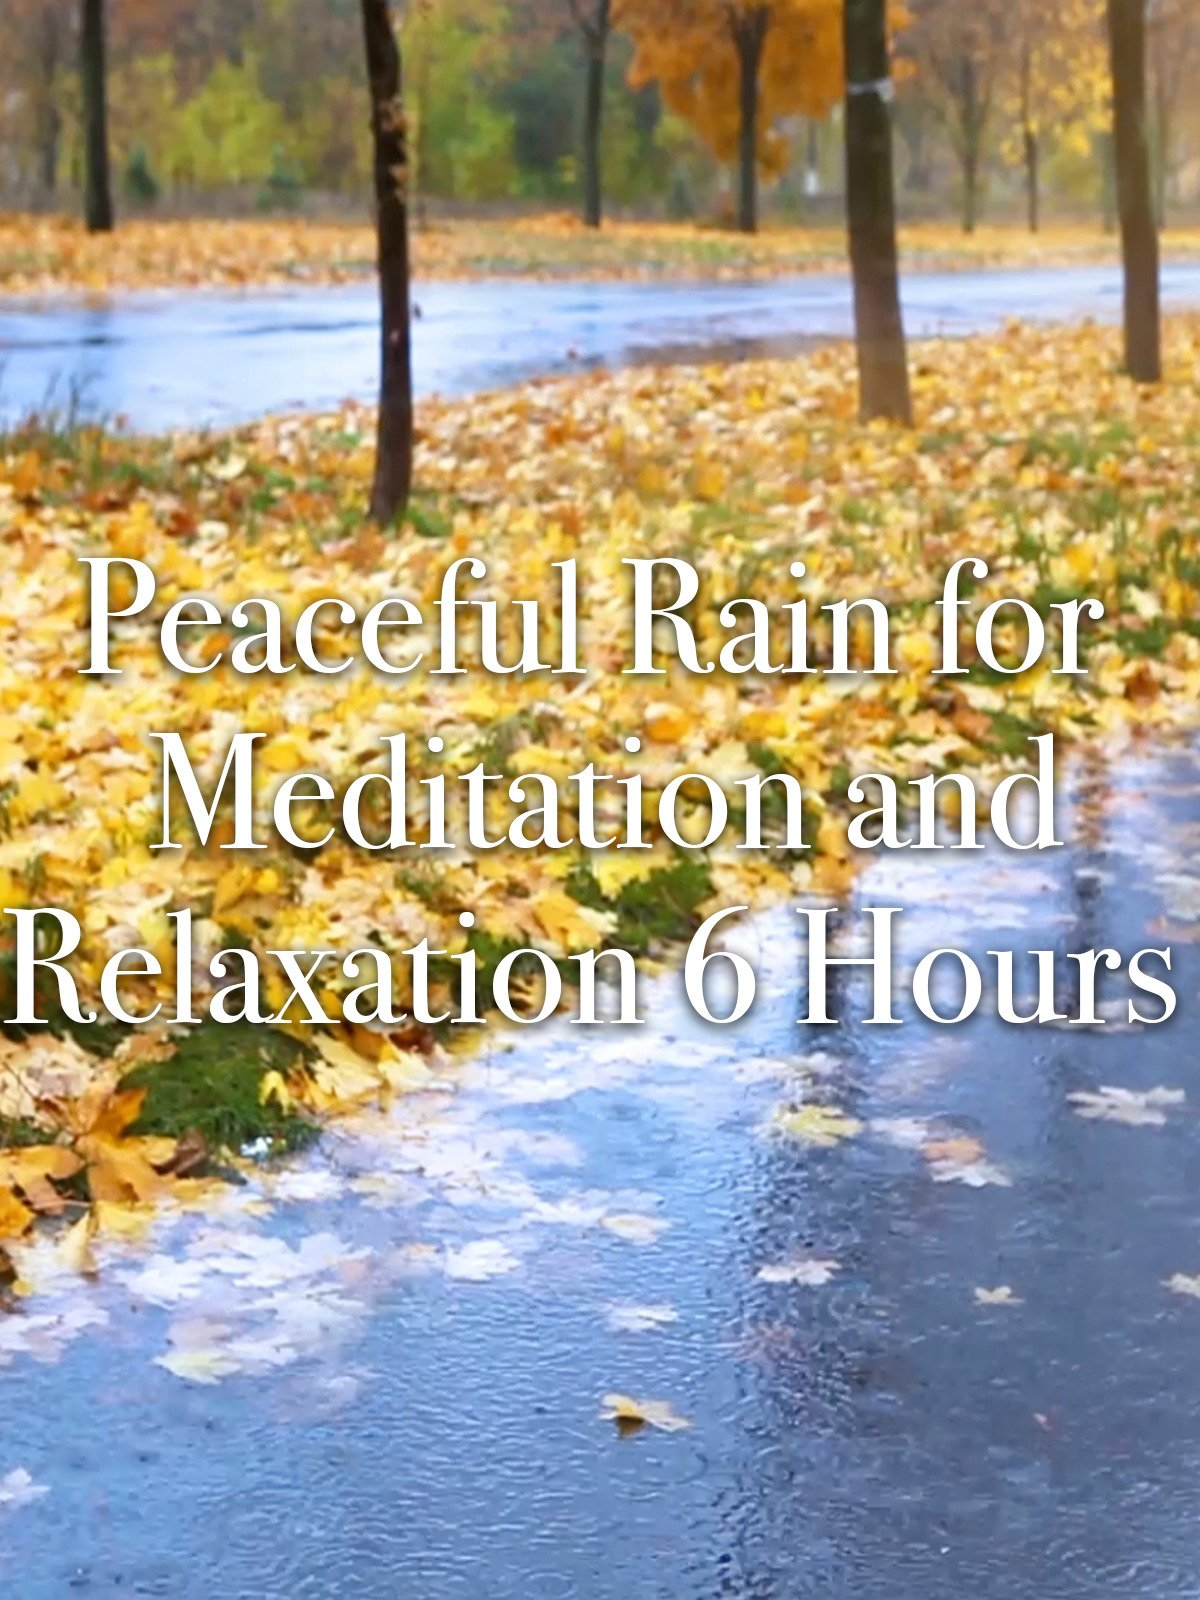 Peaceful Rain for Meditation and Relaxation 6 Hours